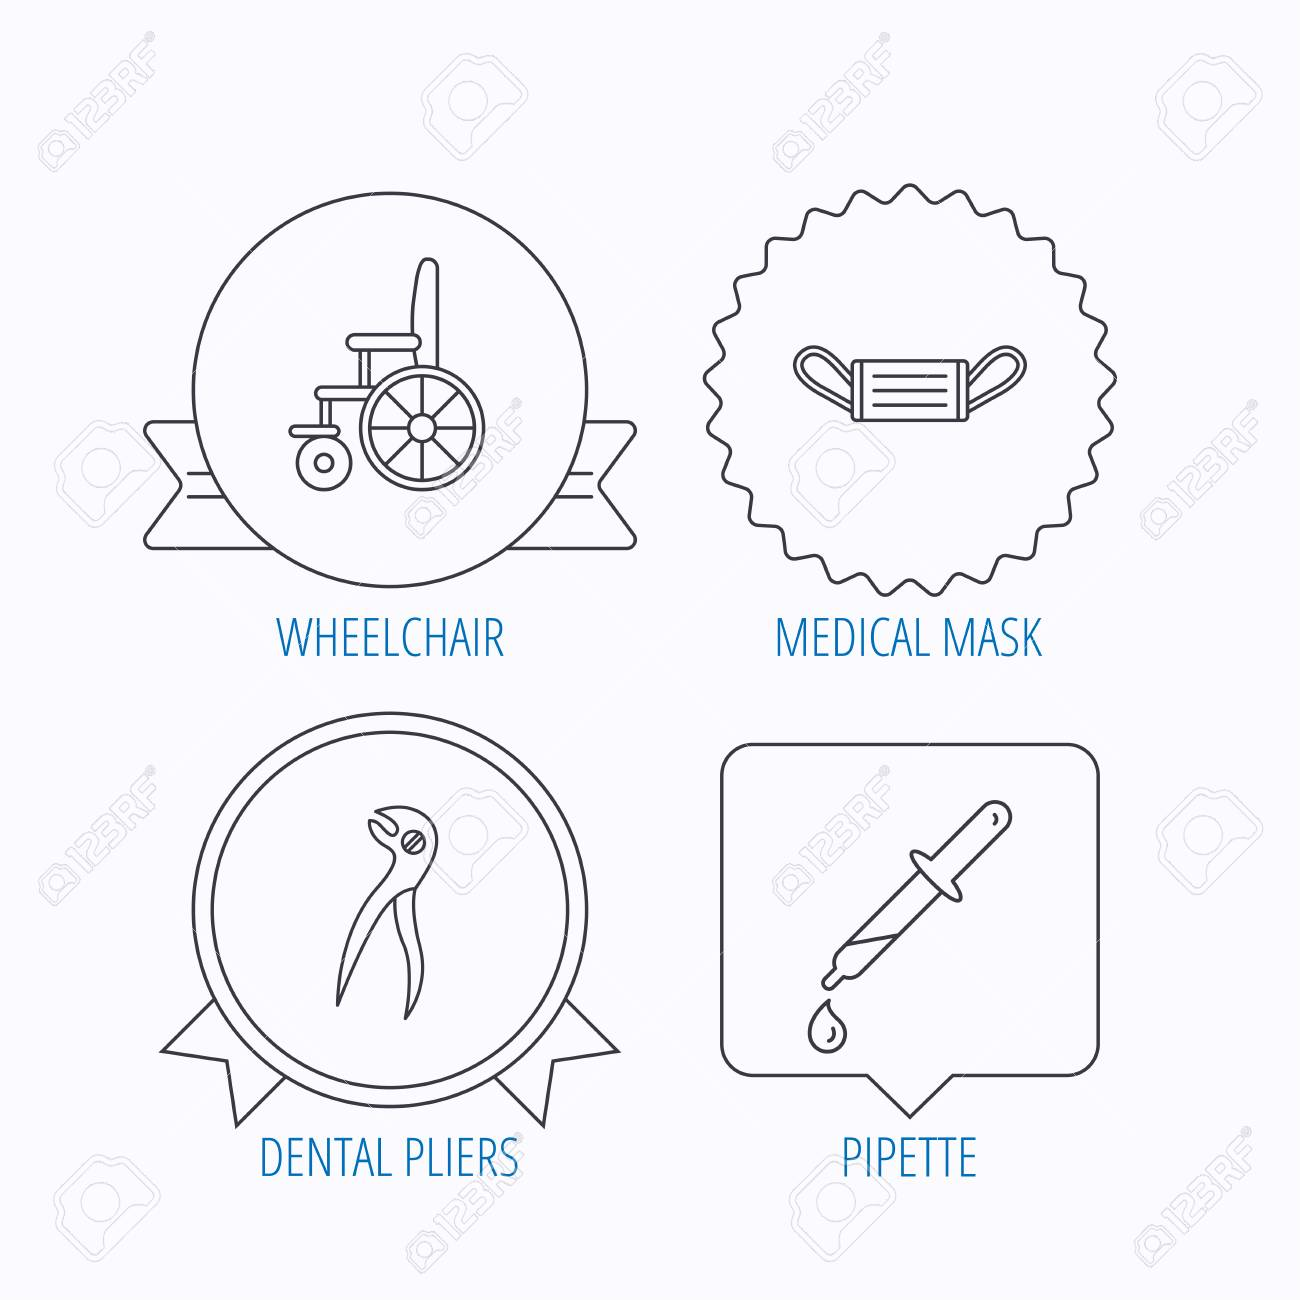 hight resolution of medical mask pipette and dental pliers icons wheelchair linear sign award medal